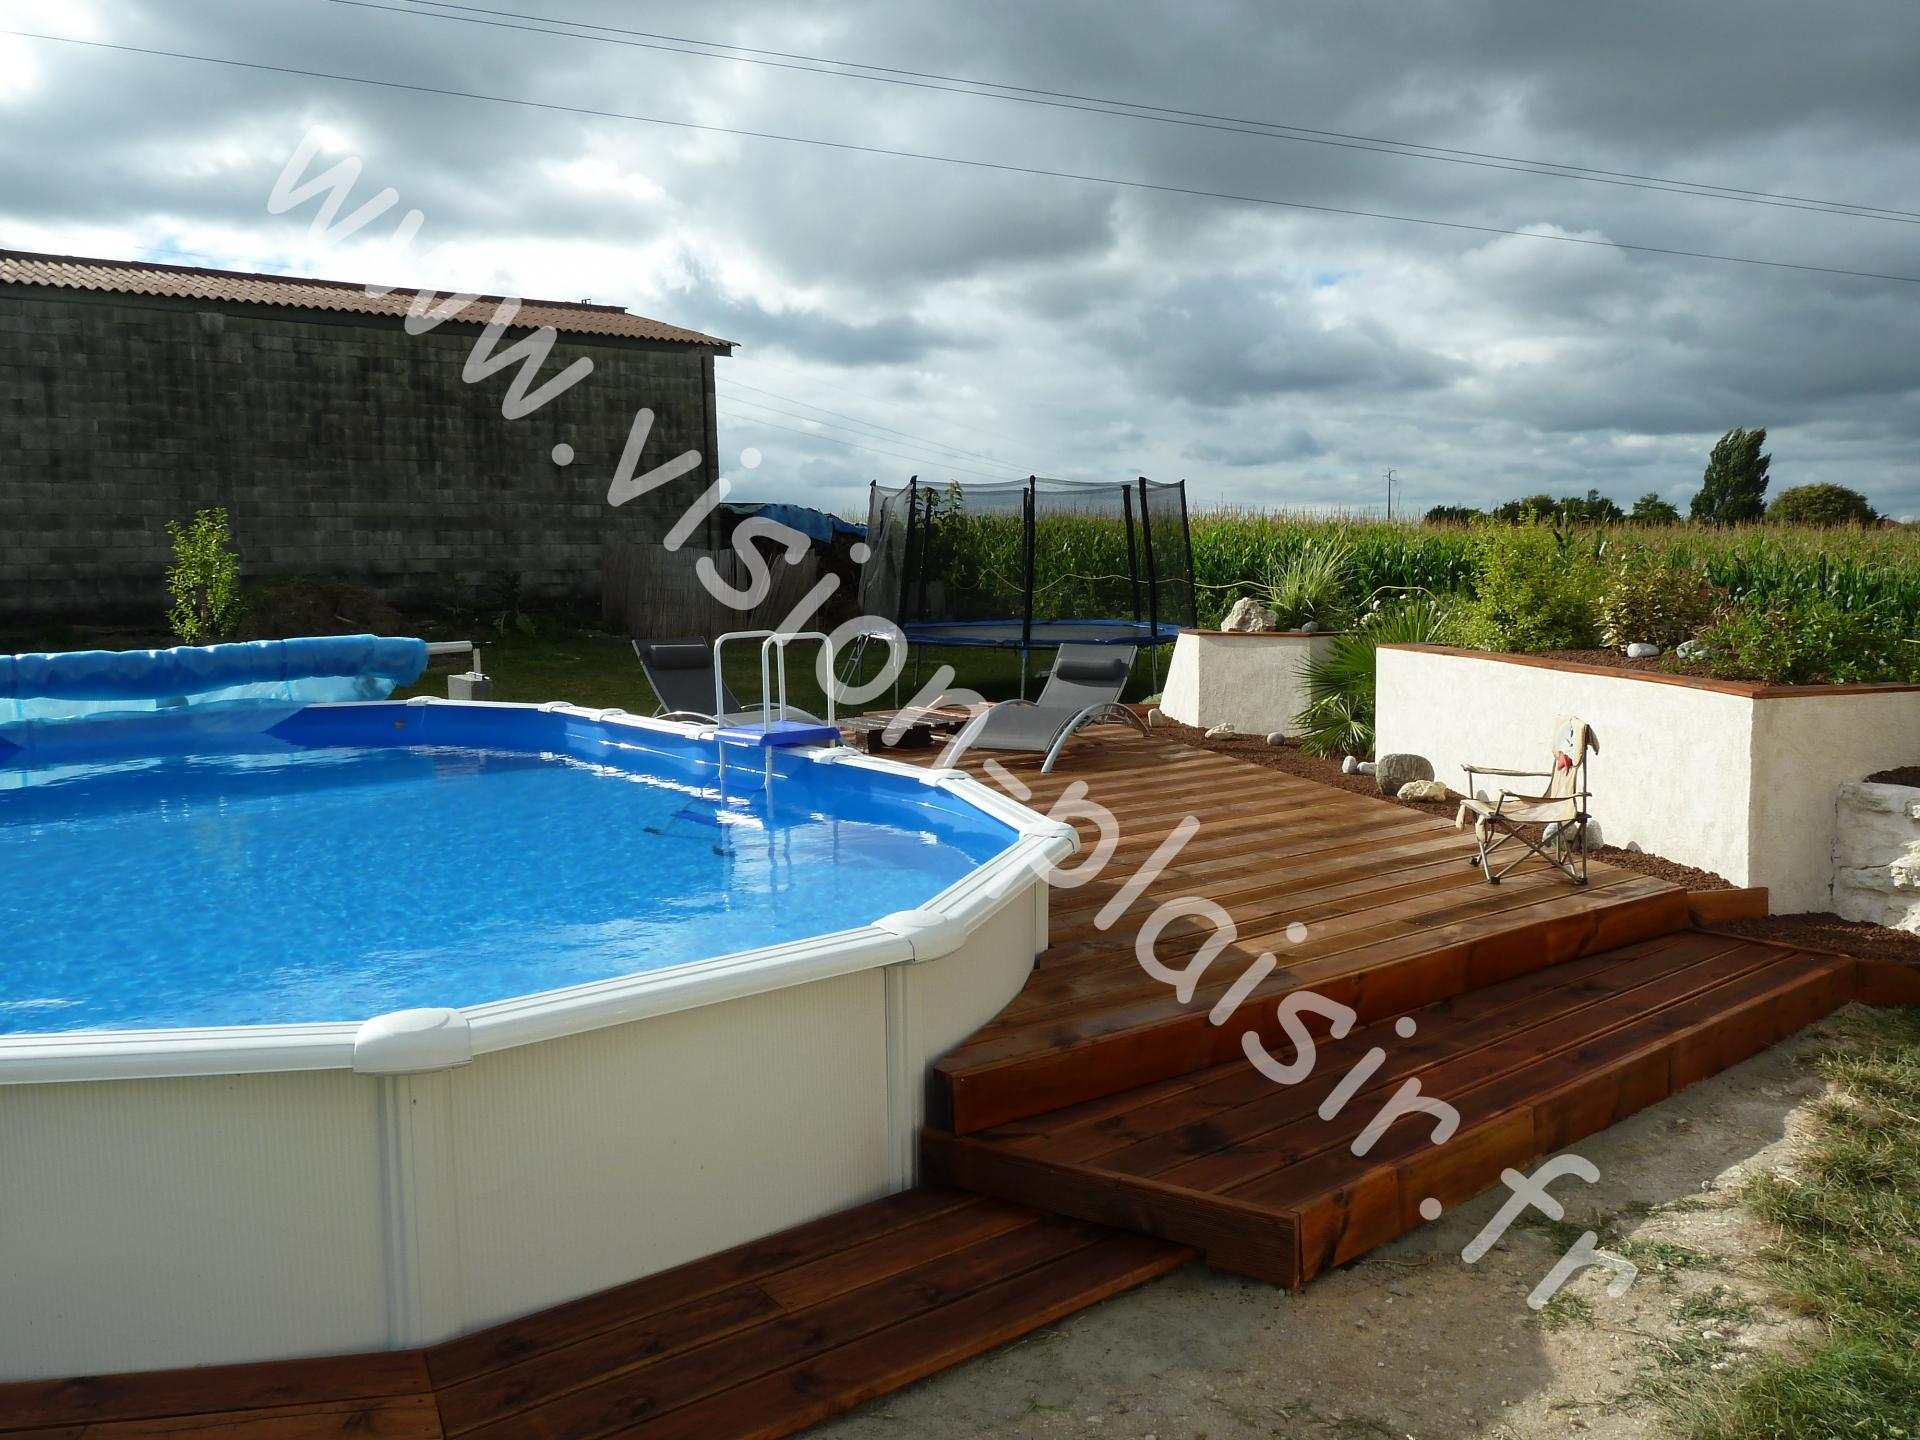 Blog de vision plaisir piscine hors sol semi enterr e for Piscine semi enterree beton